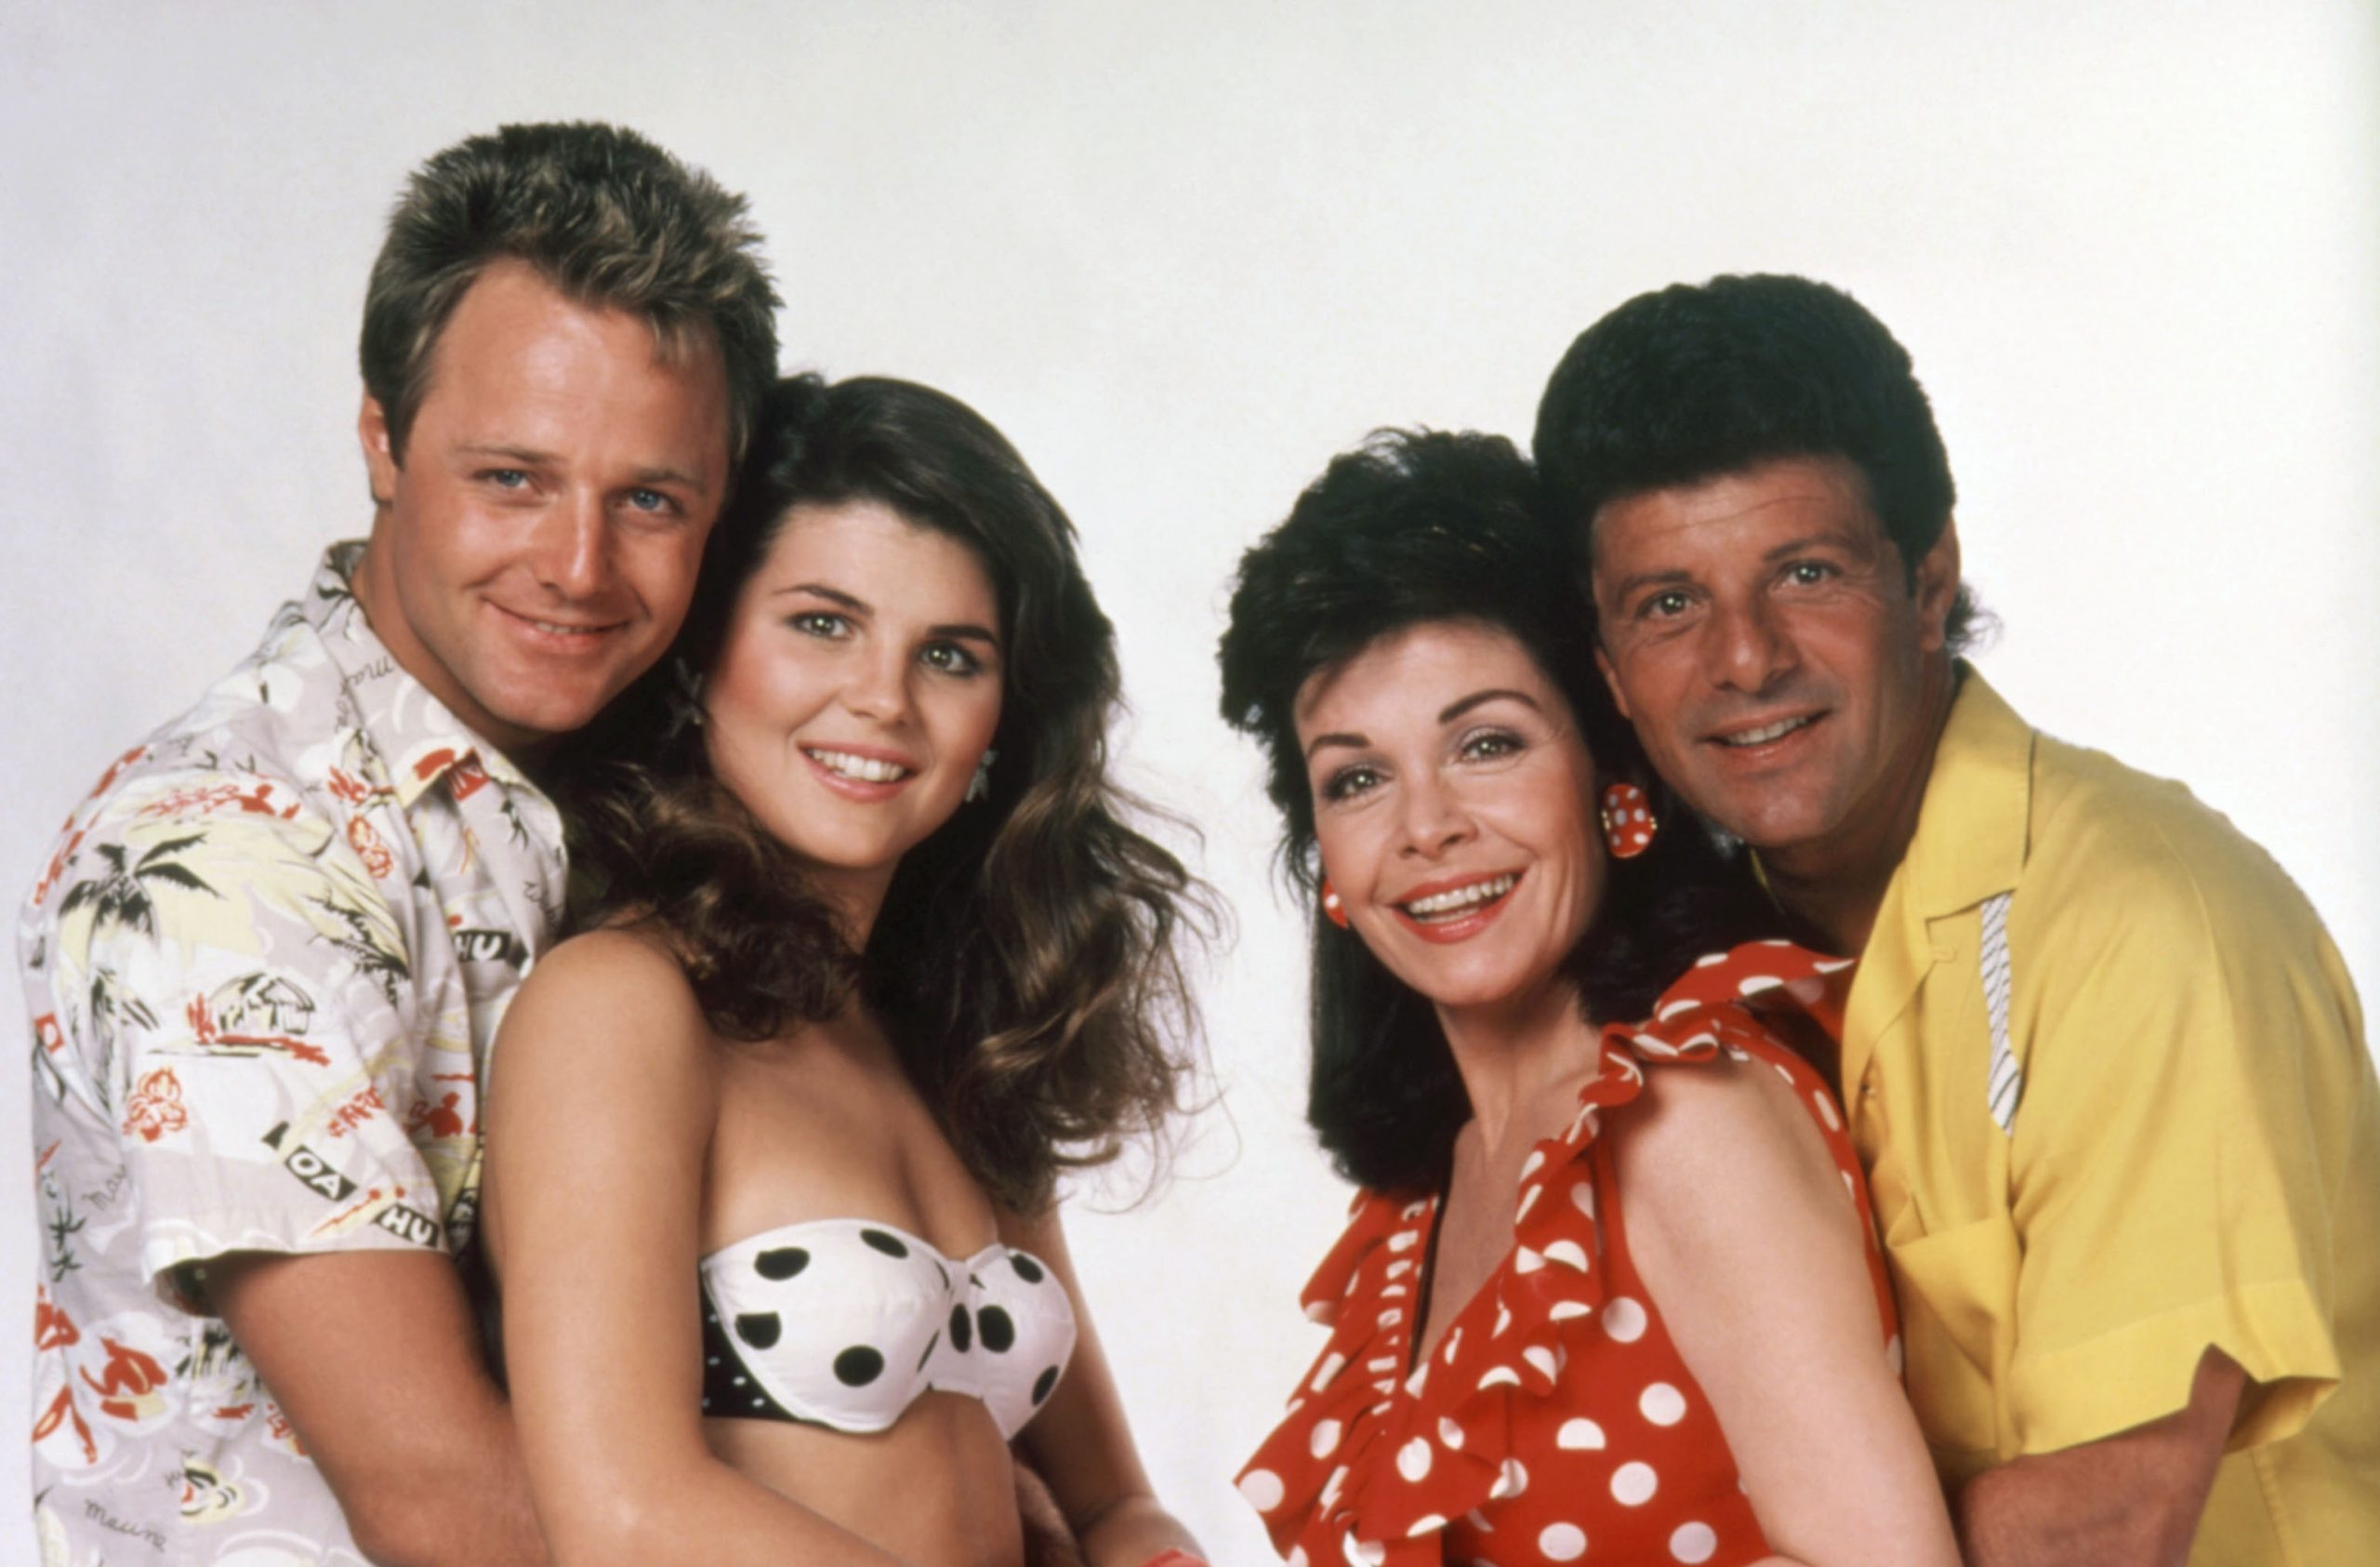 annette-funicello-frankie-avolon-back-to-the-beach